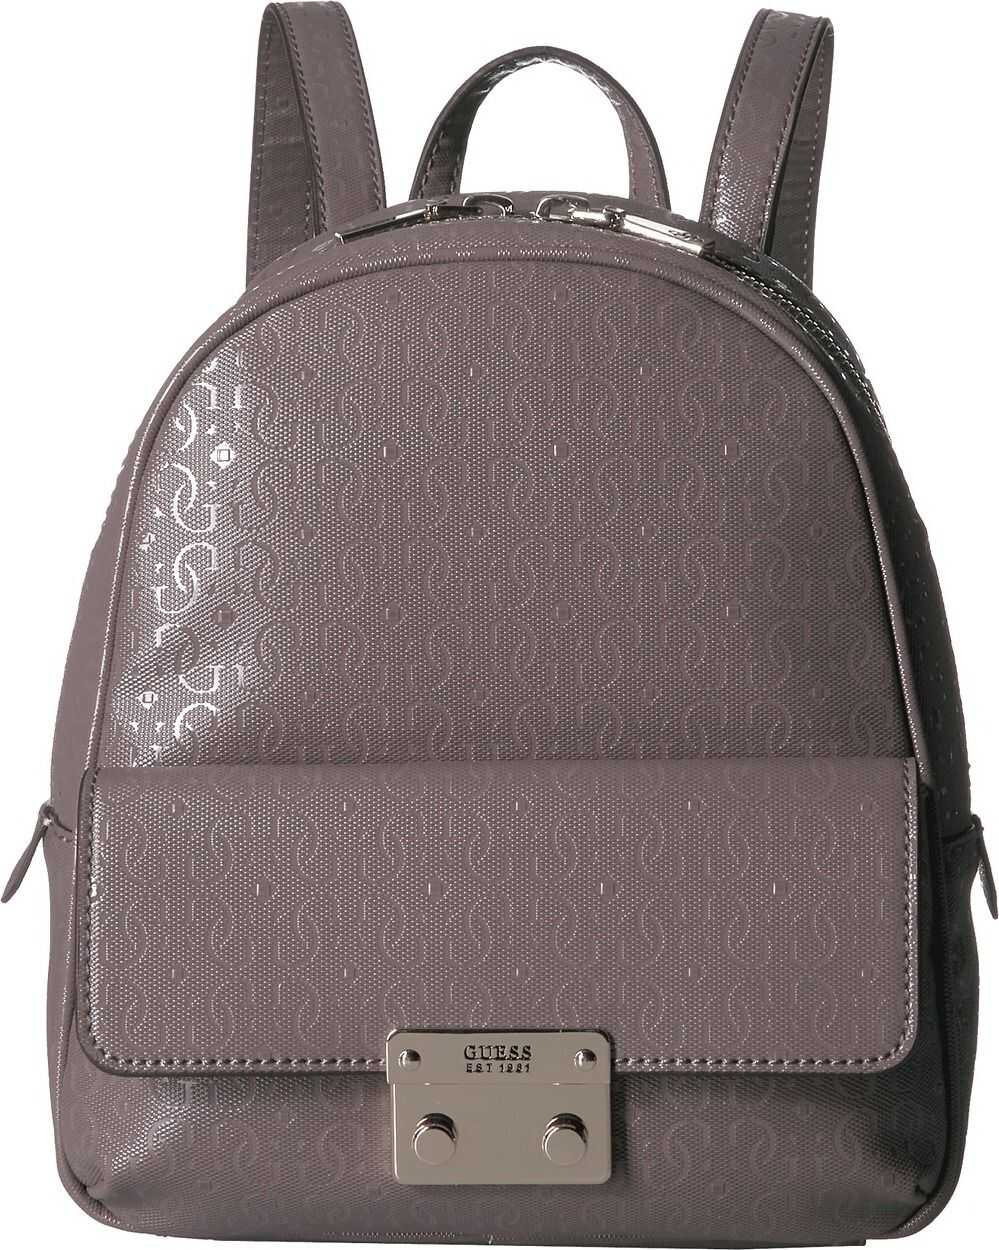 GUESS Tamra Small Backpack Taupe